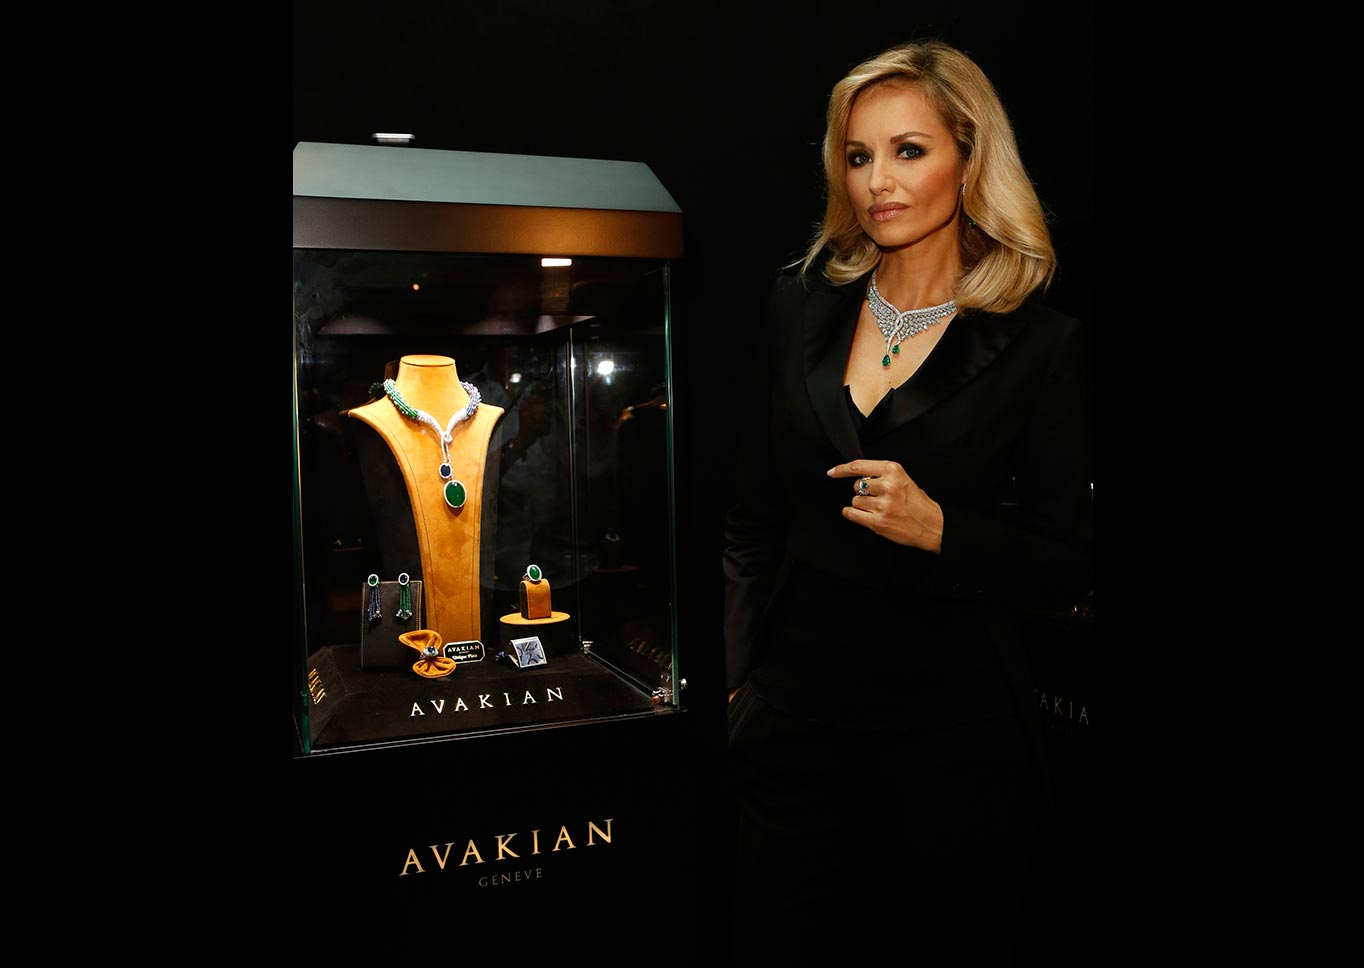 Avakian Geneve – A Matter Of Style